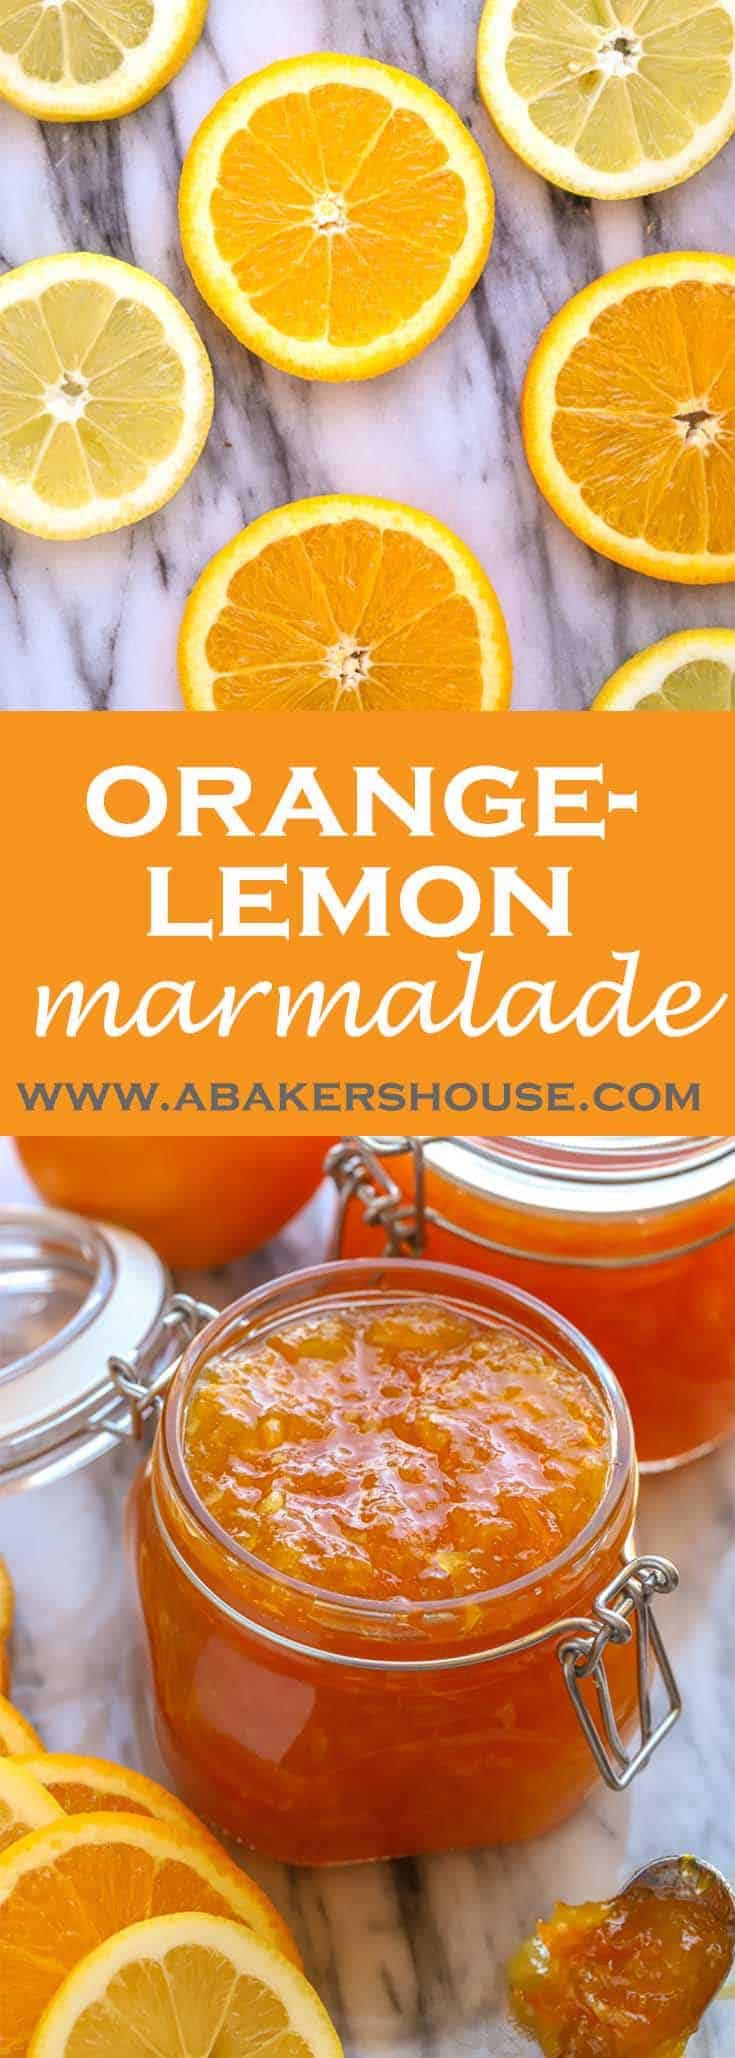 Bright and citrus-filled, homemade orange lemon marmalade will brighten any winter's morning. With a bit of preparation now, you can easily make and preserve this marmalade then enjoy it in the months to come.  #abakershouse #marmalade #preserving #canning #orange #lemon #citrus